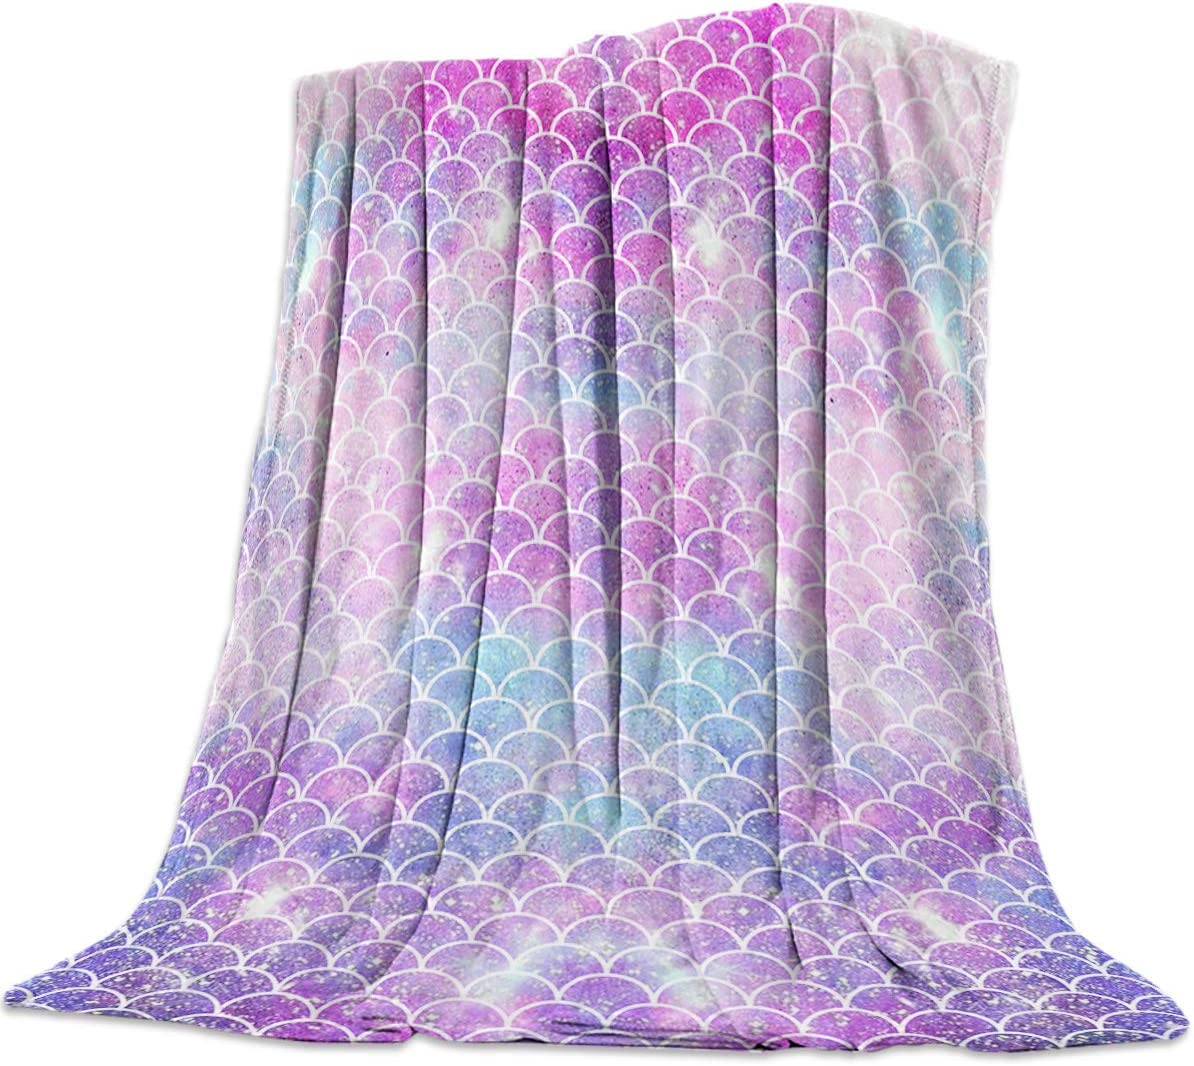 Arts Language Flannel Max 52% OFF Fleece Throw Mermaid Bed Couch for Genuine Blanket